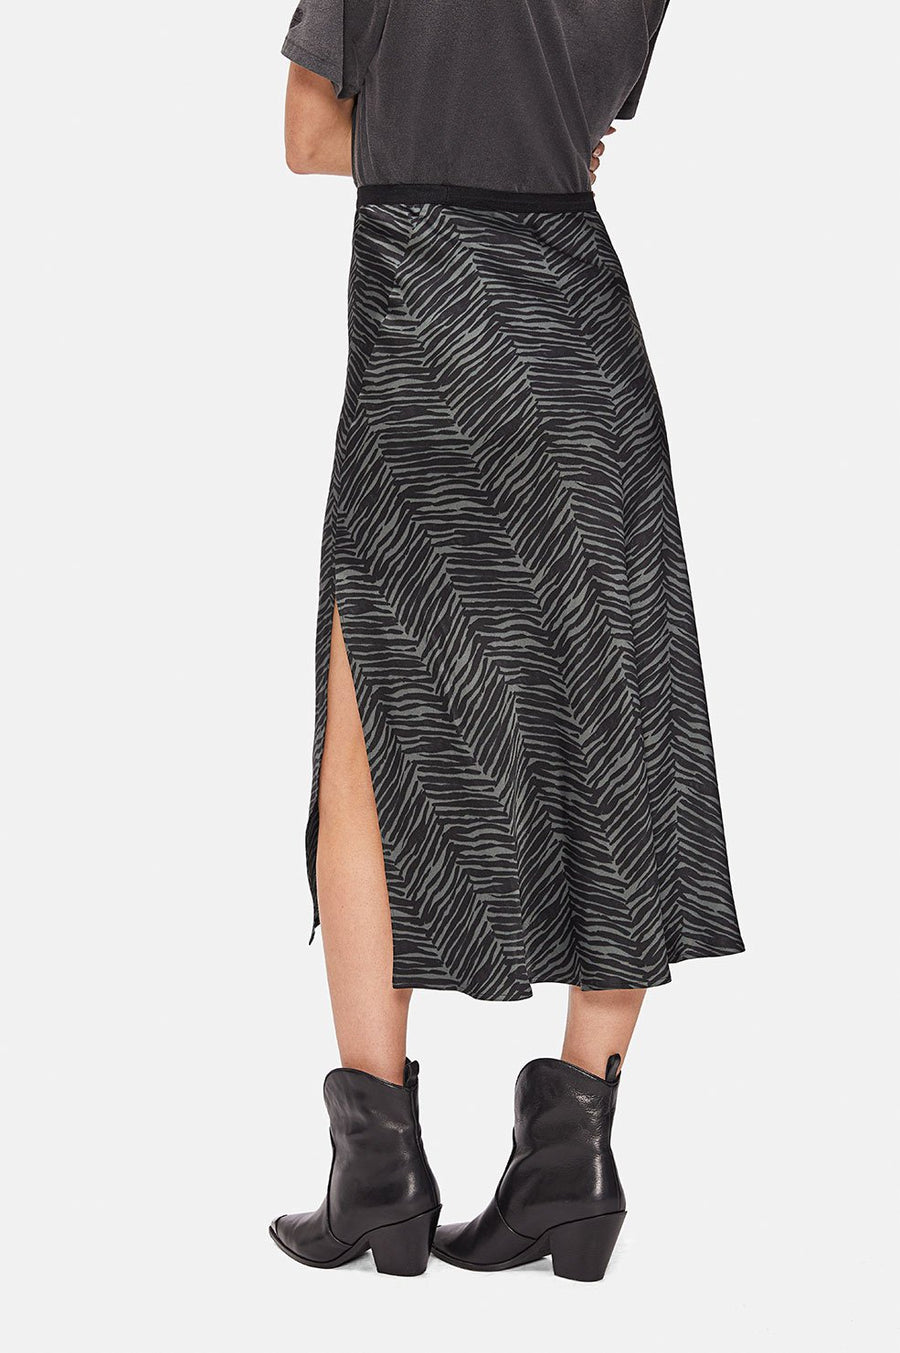 Dolly Silk Skirt - Willow Green Zebra